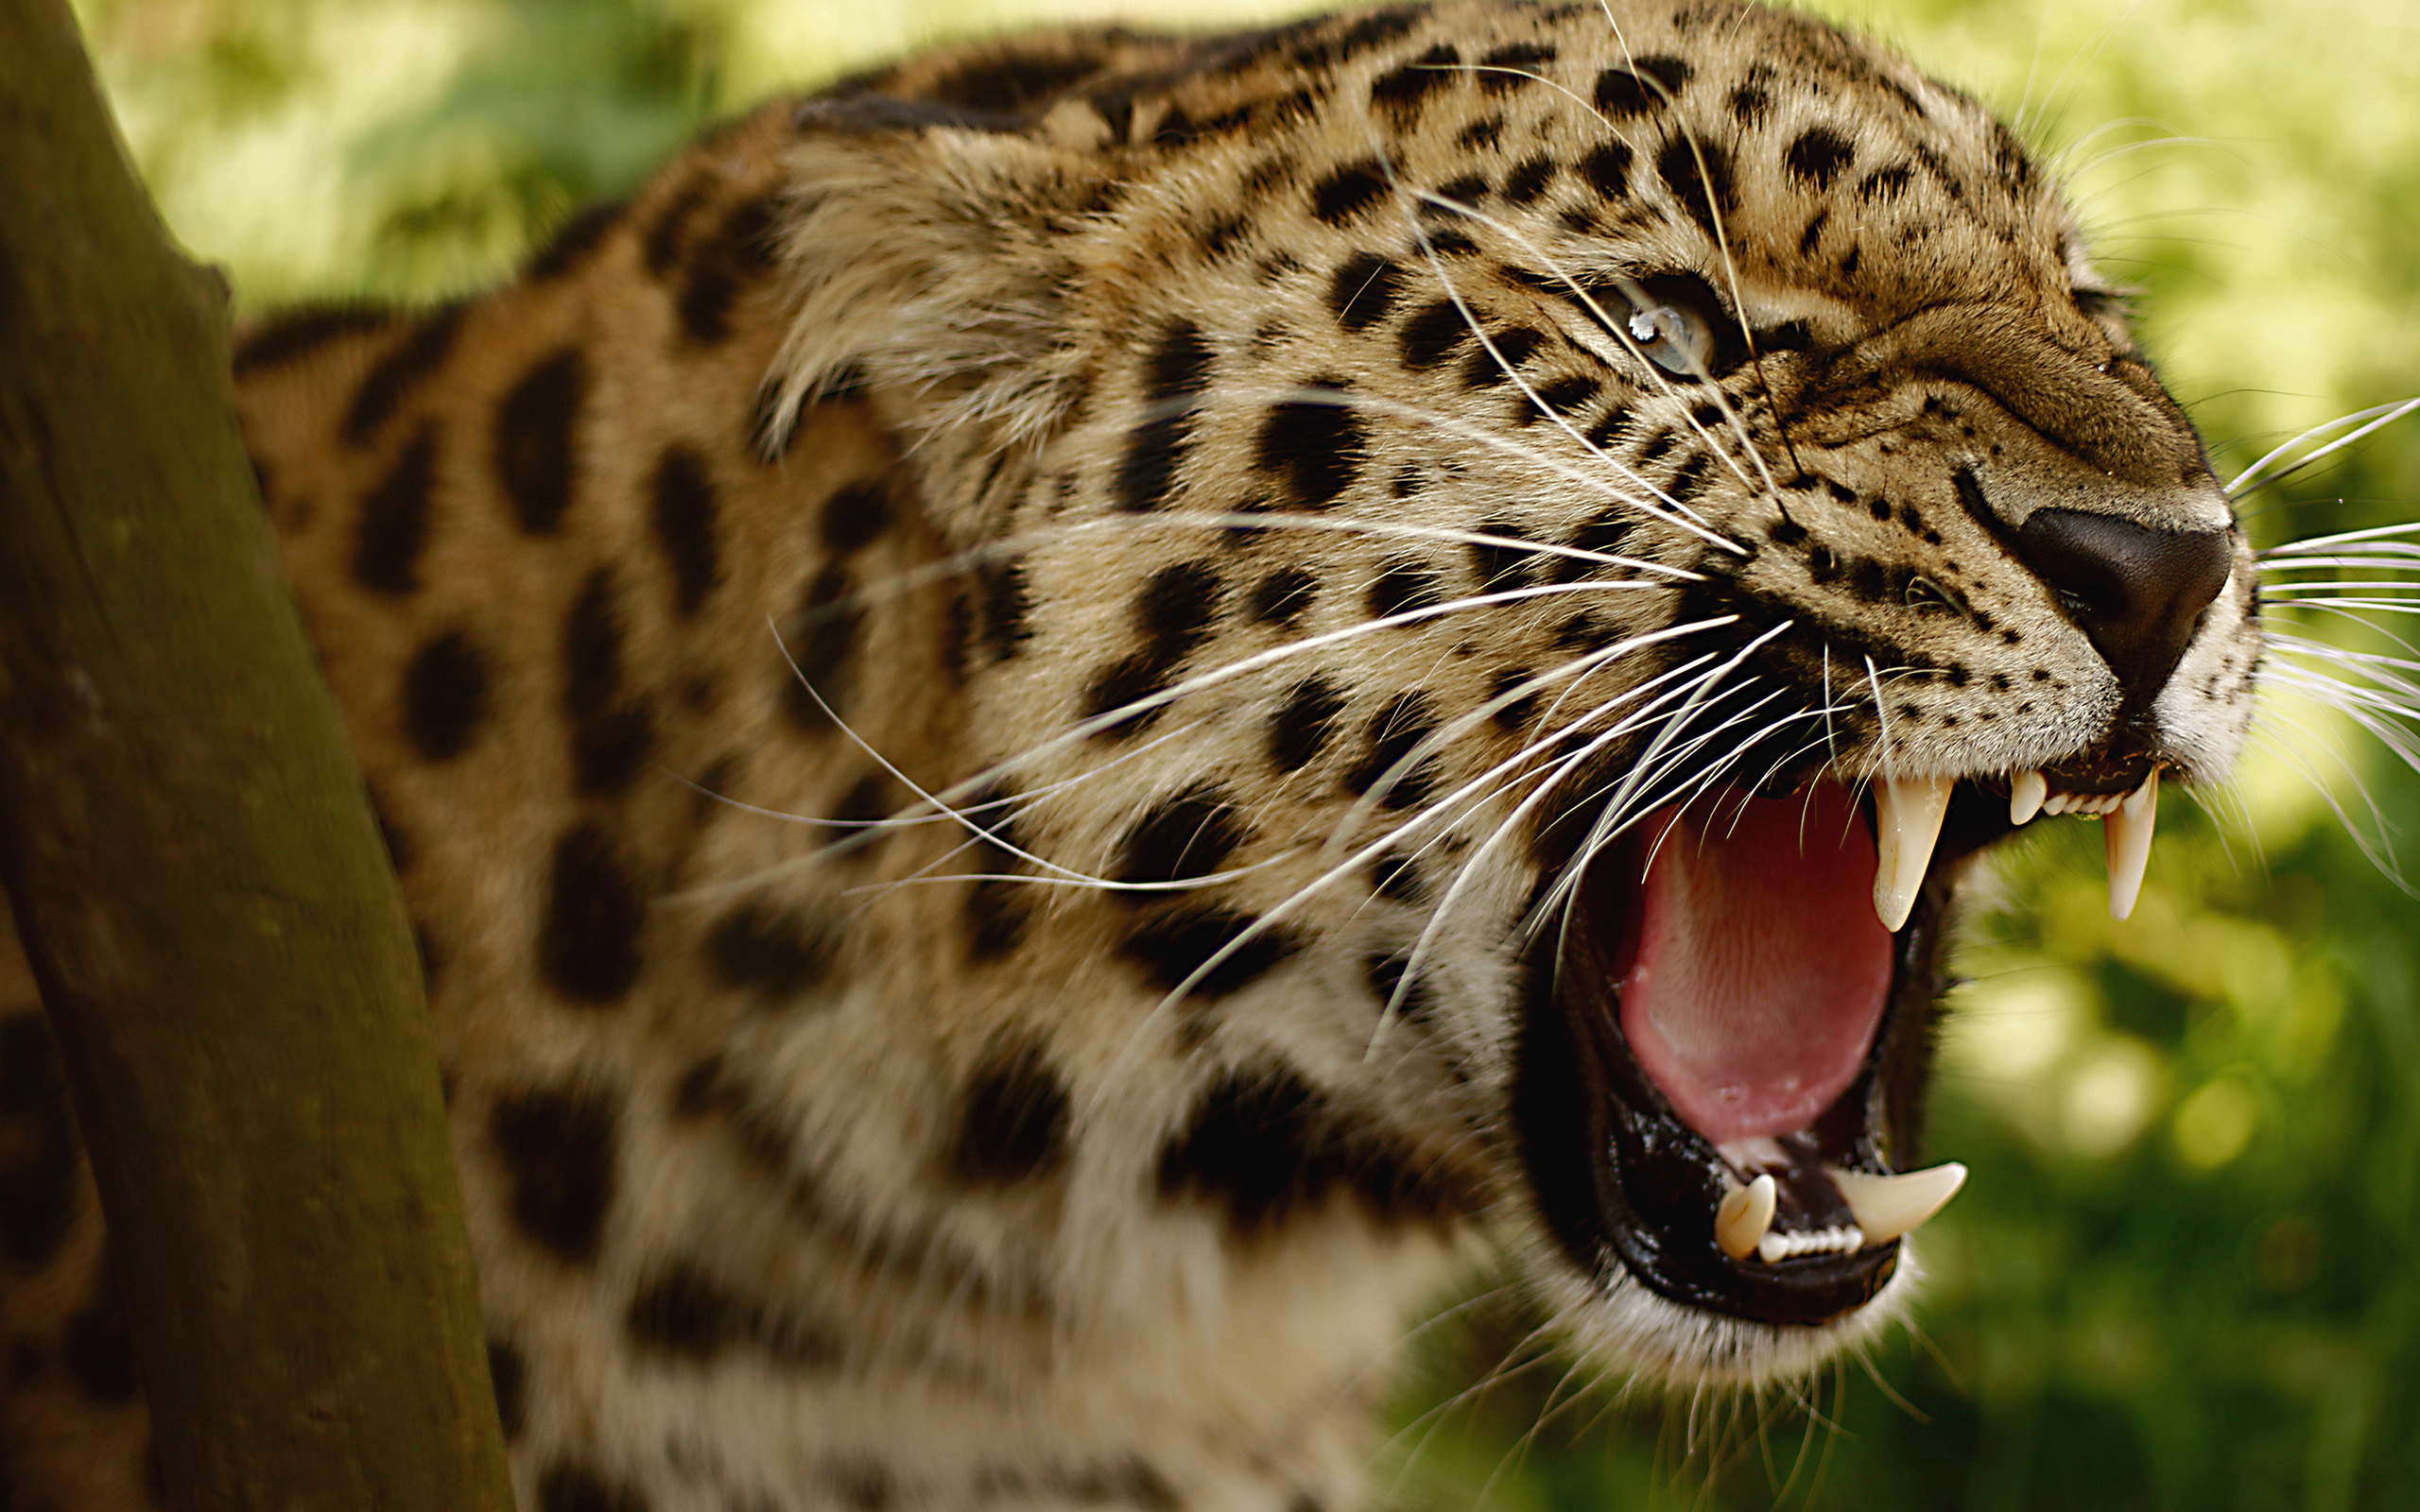 Fierce Jaguar Grin 1053.02 Kb